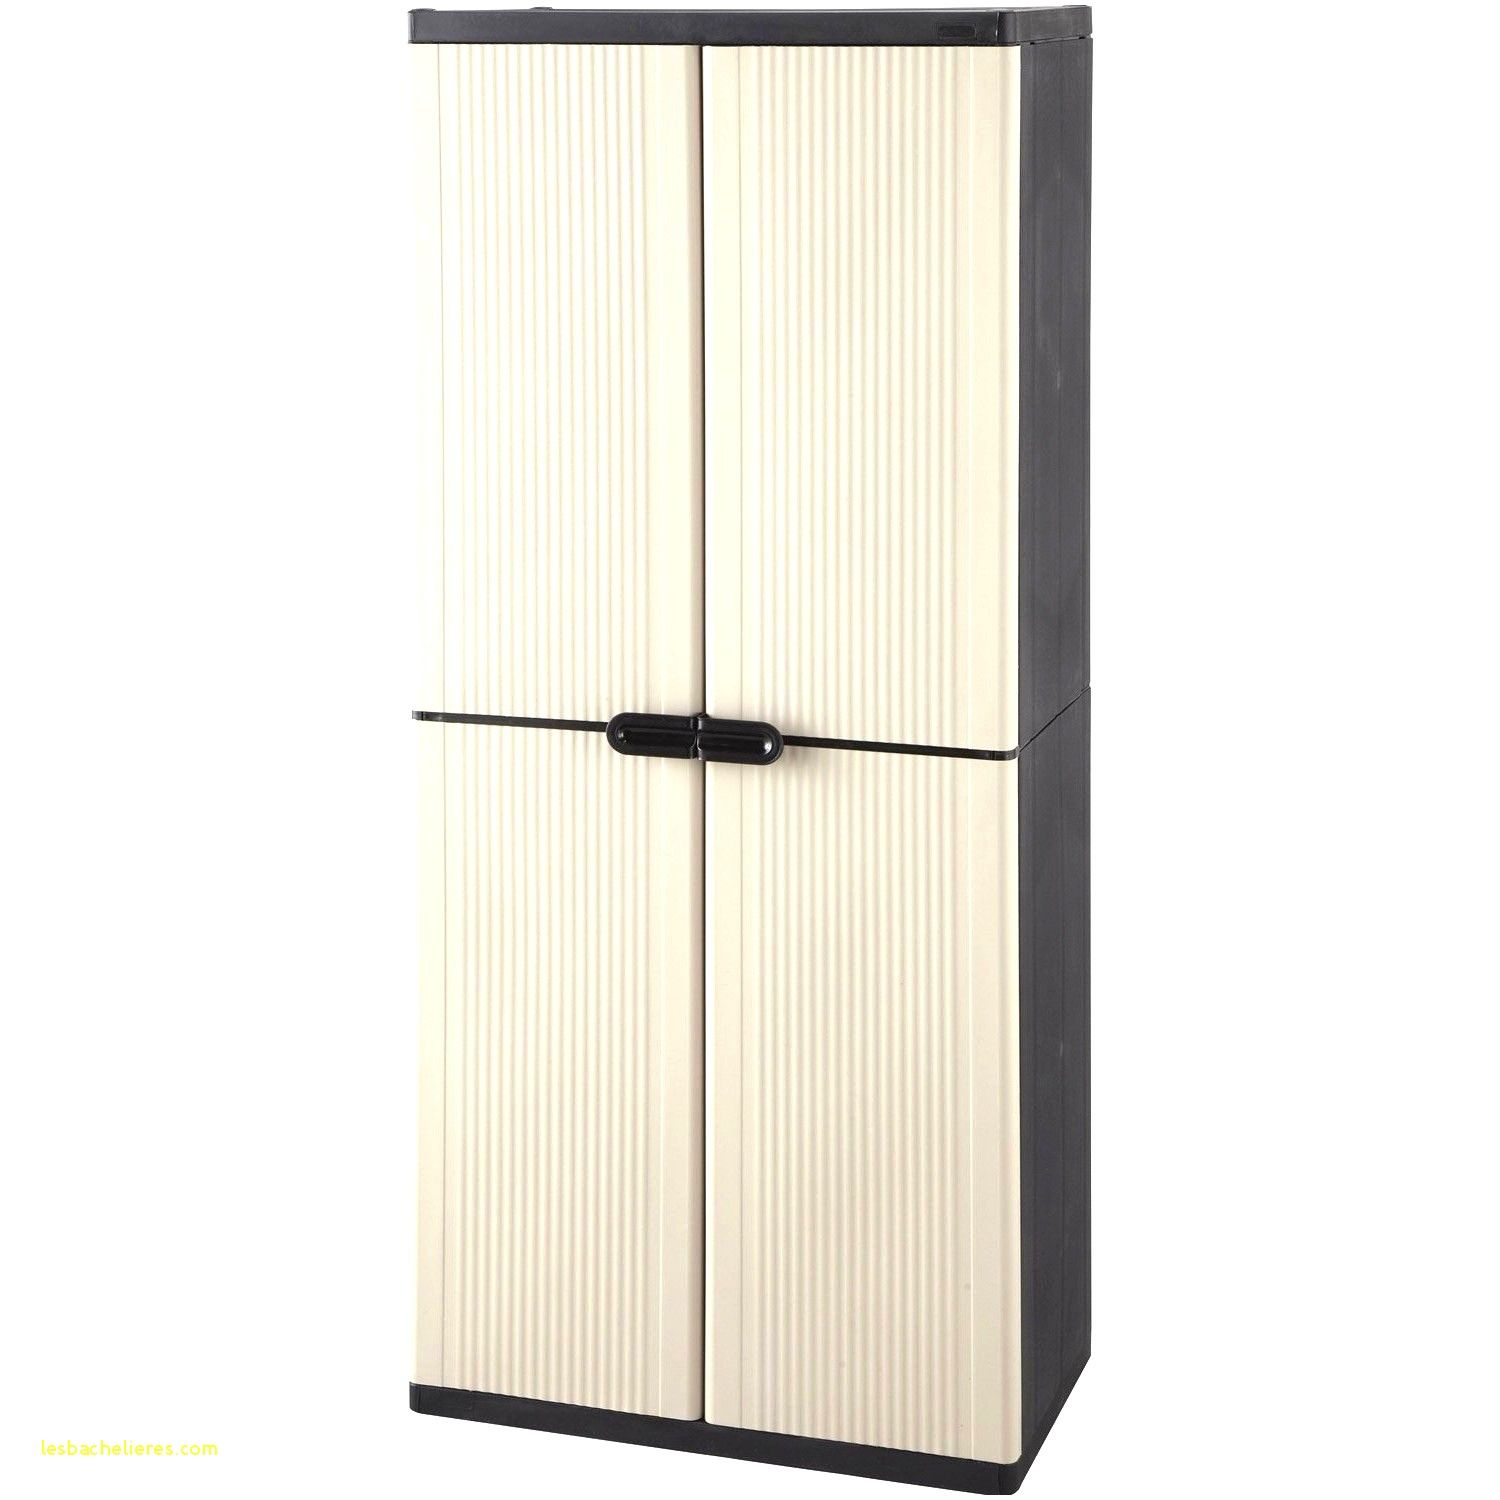 Armoire Plastique Pas Cher Wohndesign In 2019 Tall